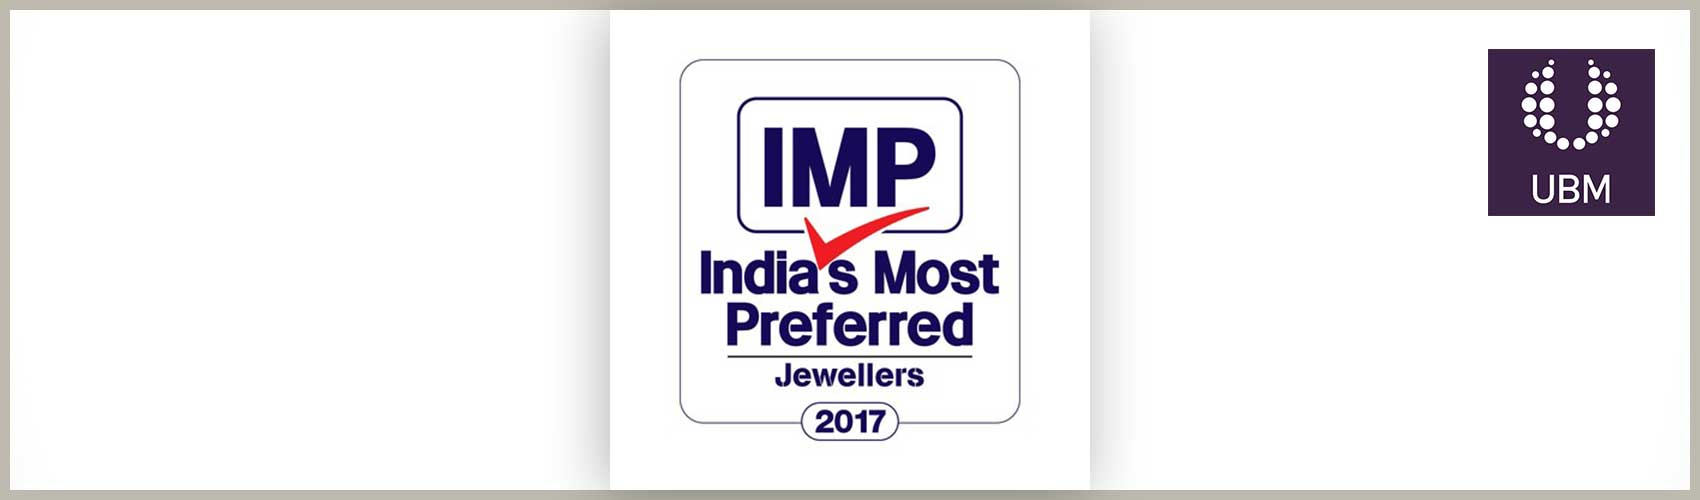 UBM India Launches 'India's Most Preferred' Initiative - Exhibition